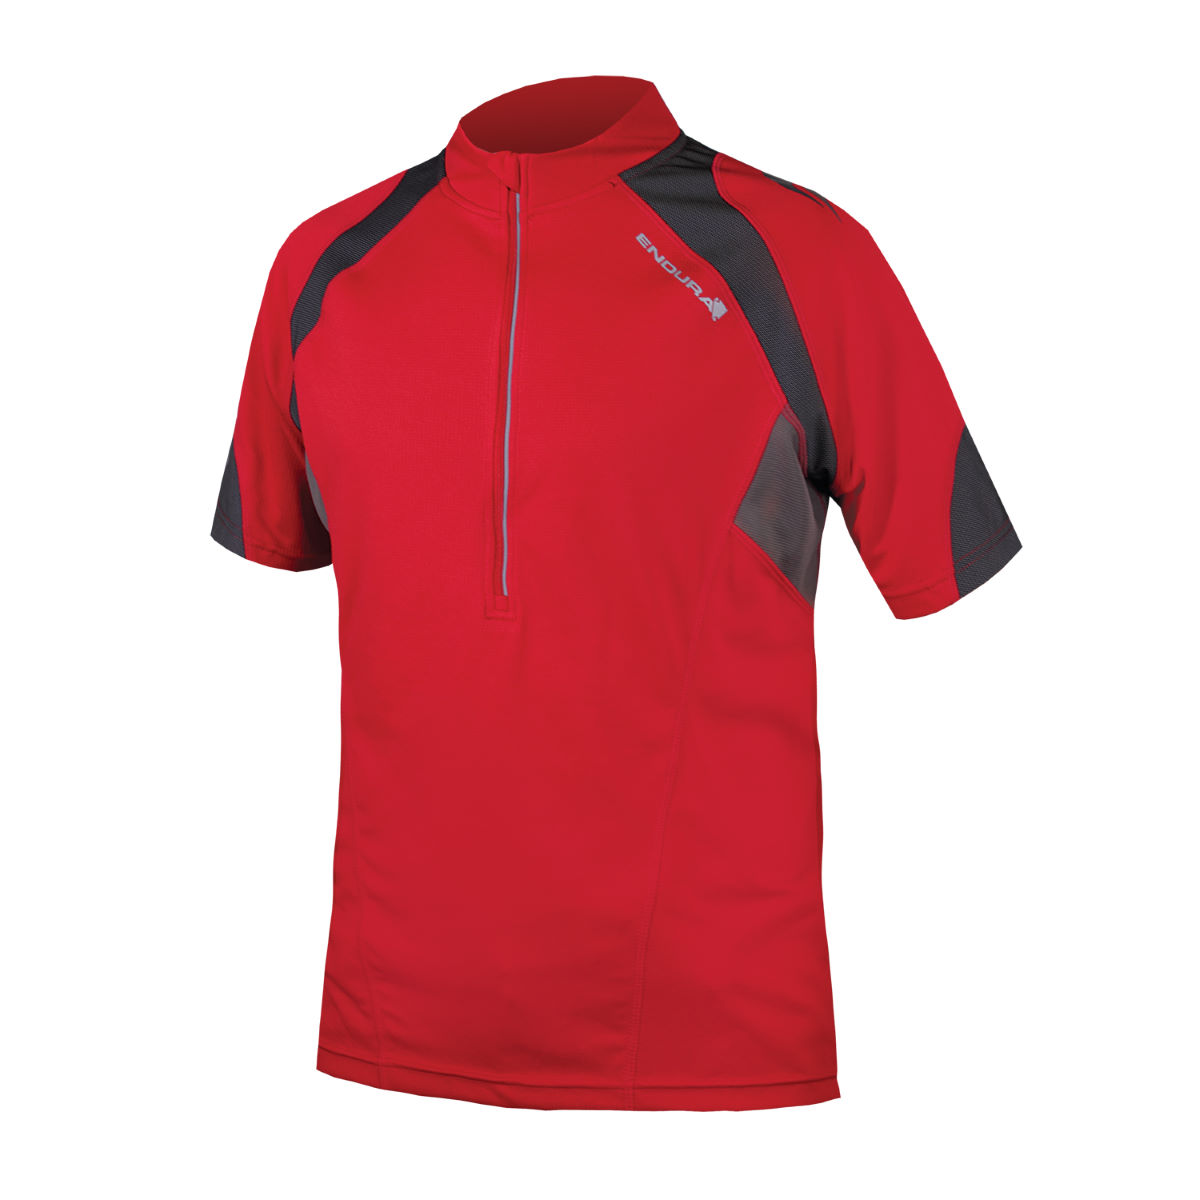 Maillot Endura Hummvee II - S Rouge Maillots vélo à manches courtes